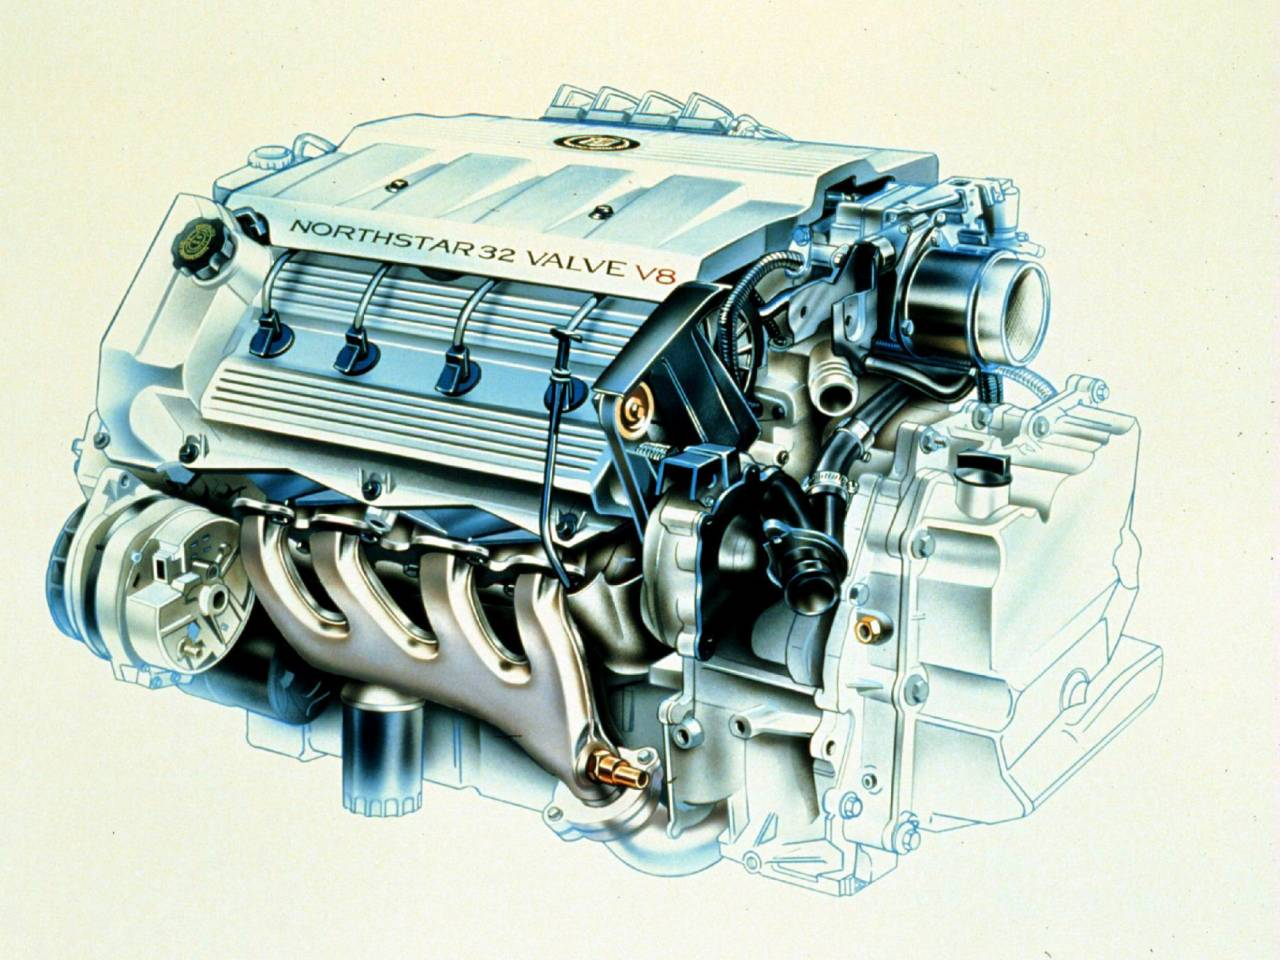 hight resolution of 2006 buick north star engine diagram